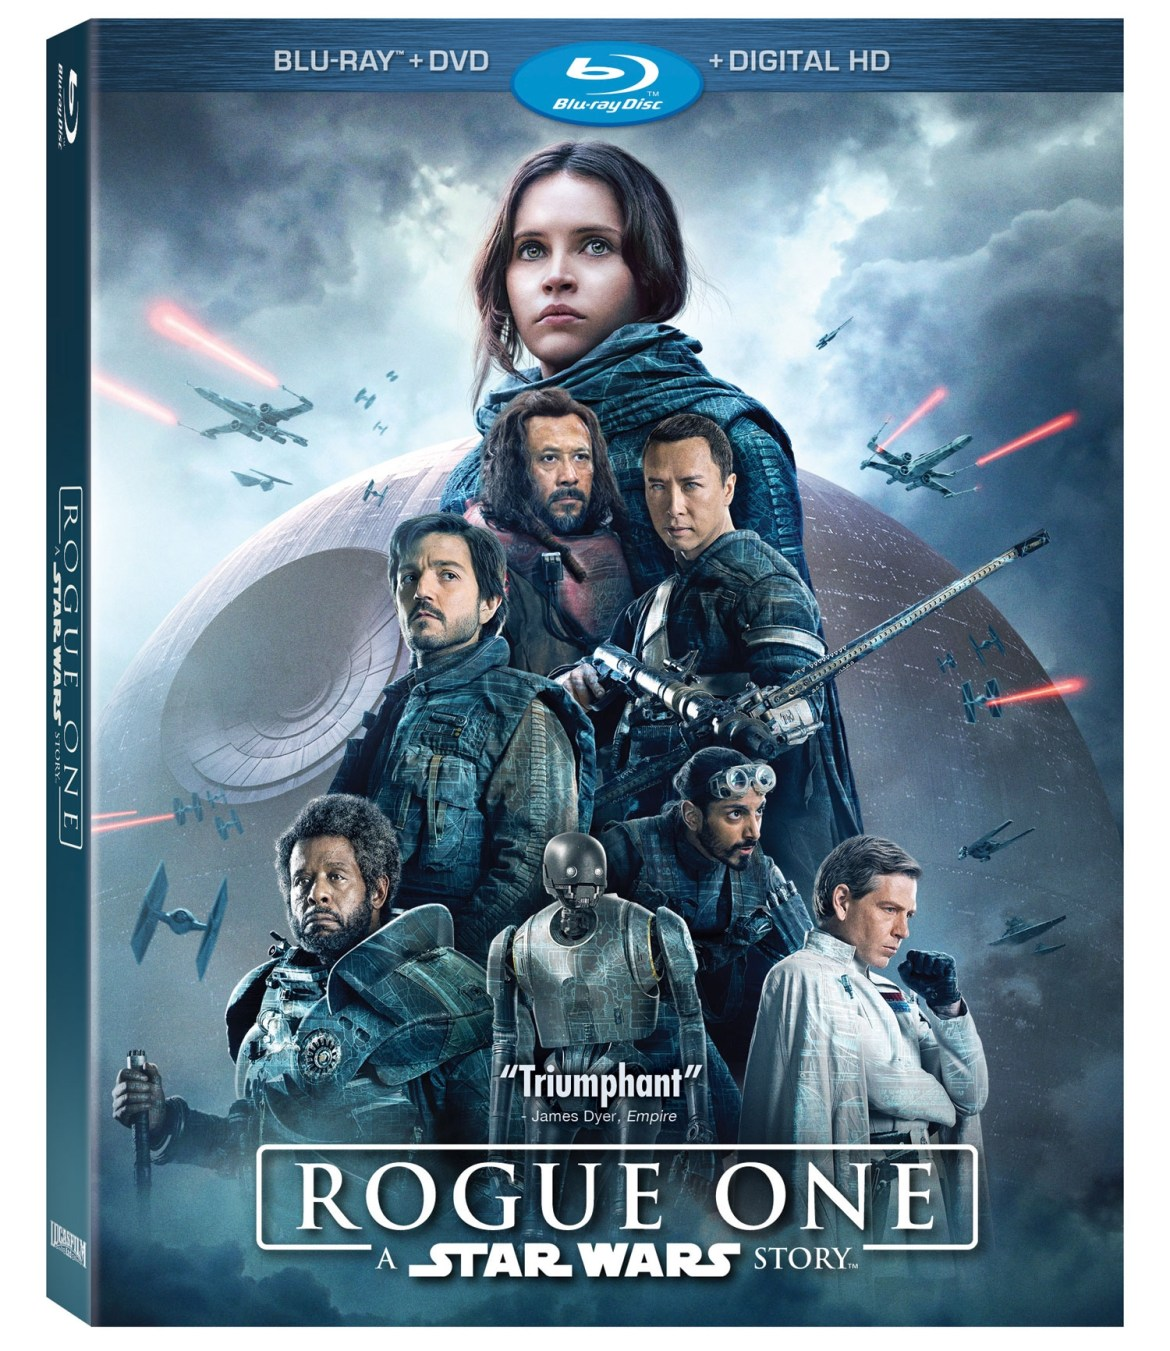 Star Wars Rogue One Blu-Ray Release Date Announced